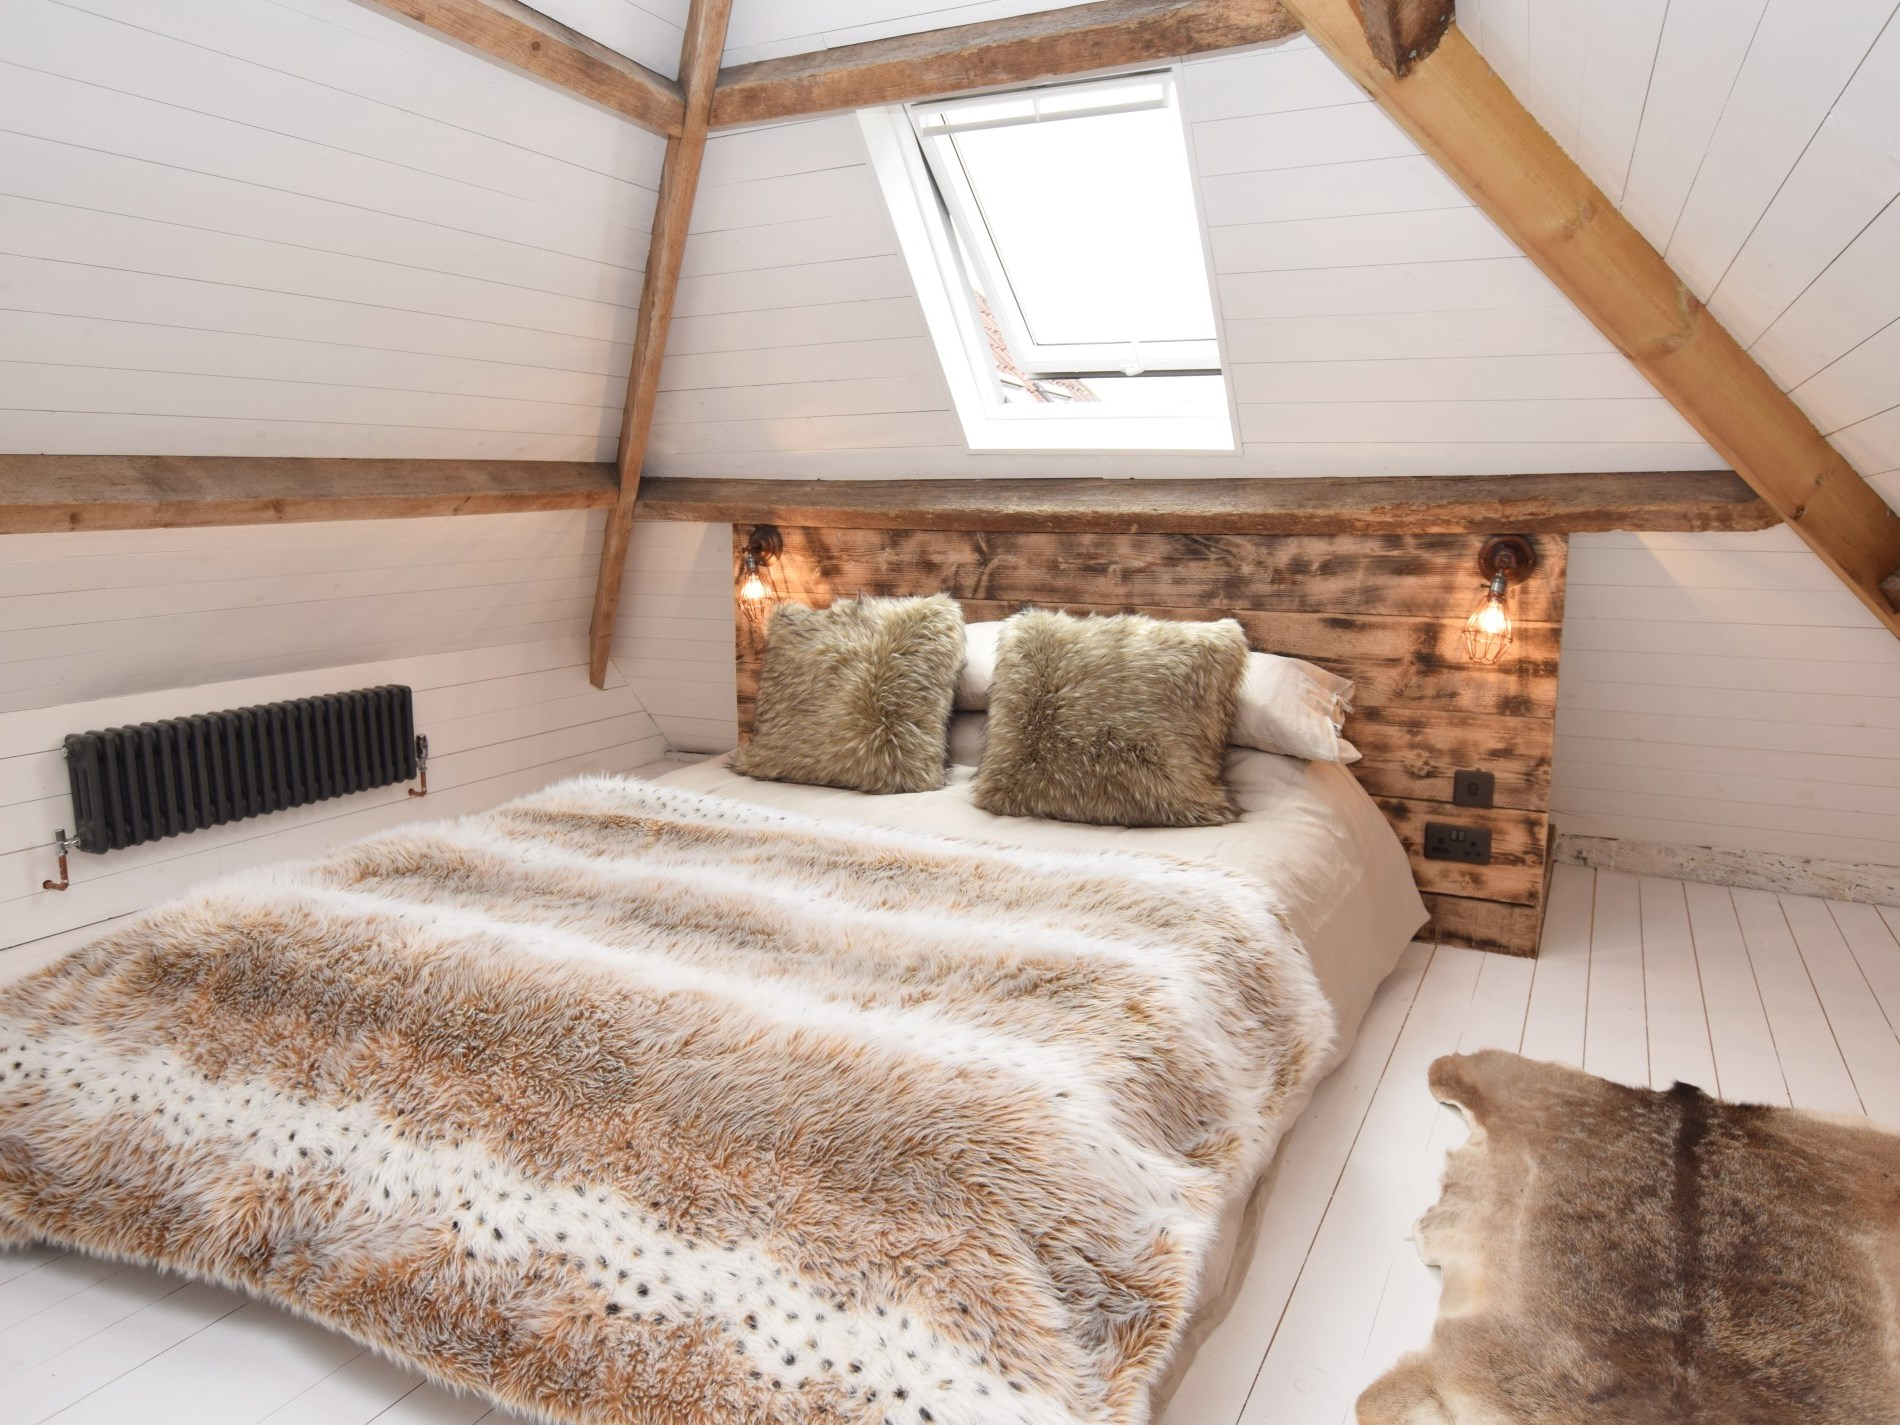 Wake up to the sound of birdsong from the king-size bed